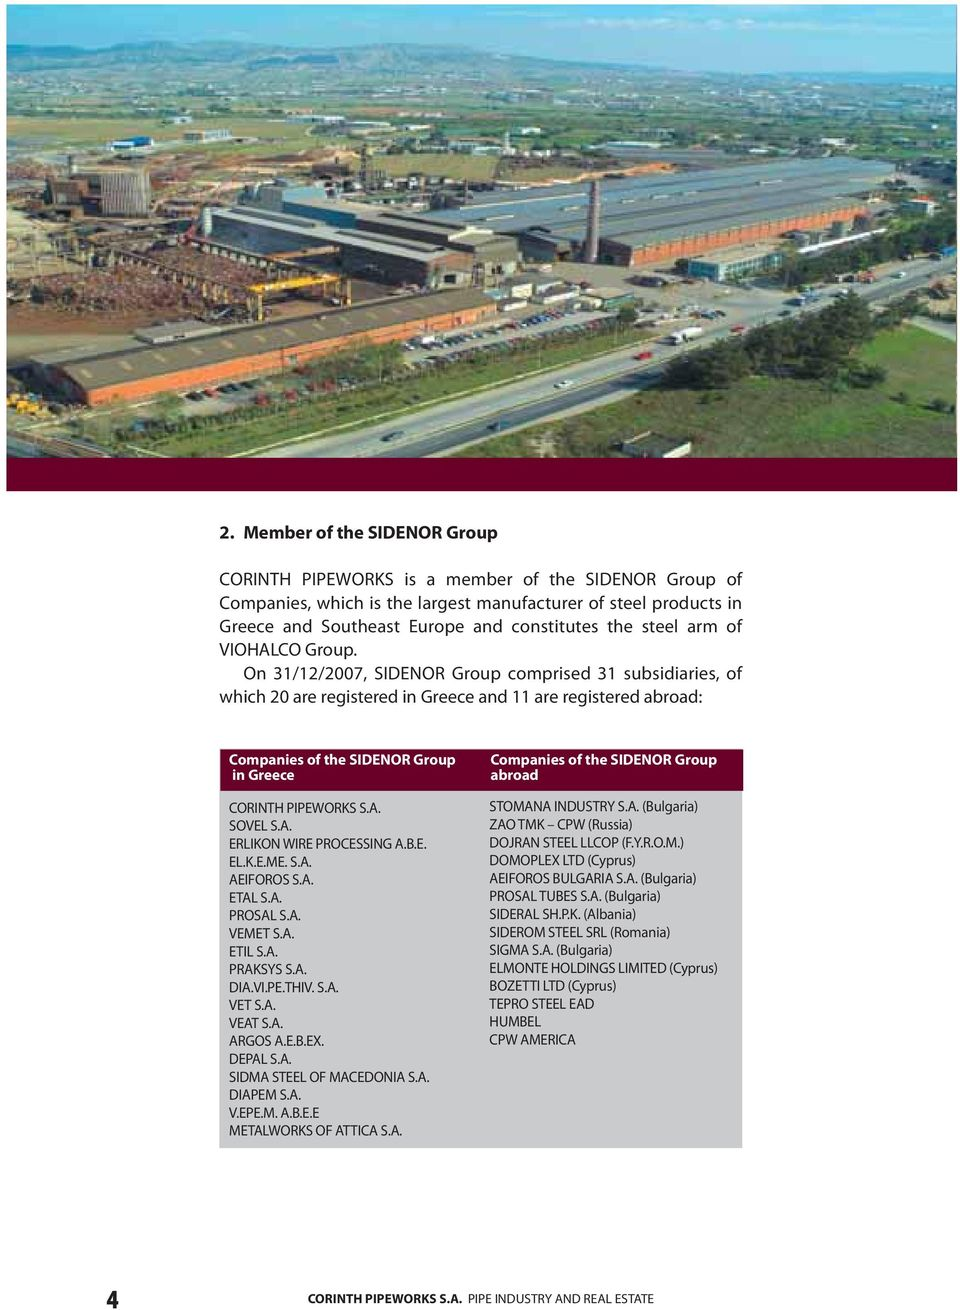 On 31/12/2007, SIDENOR Group comprised 31 subsidiaries, of which 20 are registered in Greece and 11 are registered abroad: Companies of the SIDENOR Group in Greece CORINTH PIPEWORKS S.A.